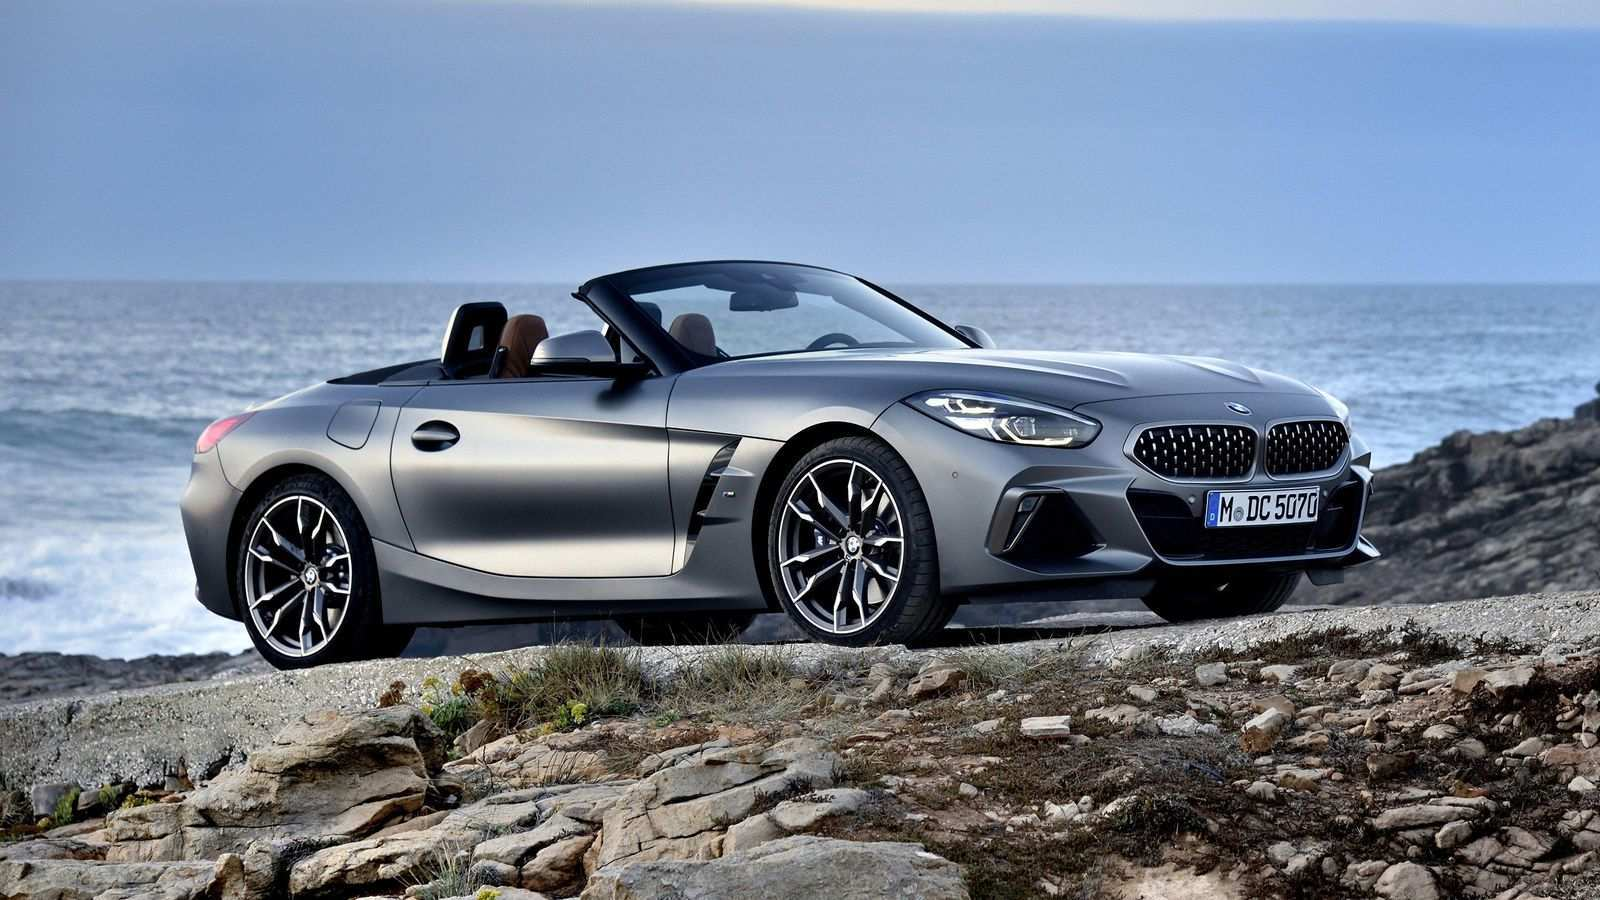 18 Gallery of BMW Z4 2020 Specs Images for BMW Z4 2020 Specs